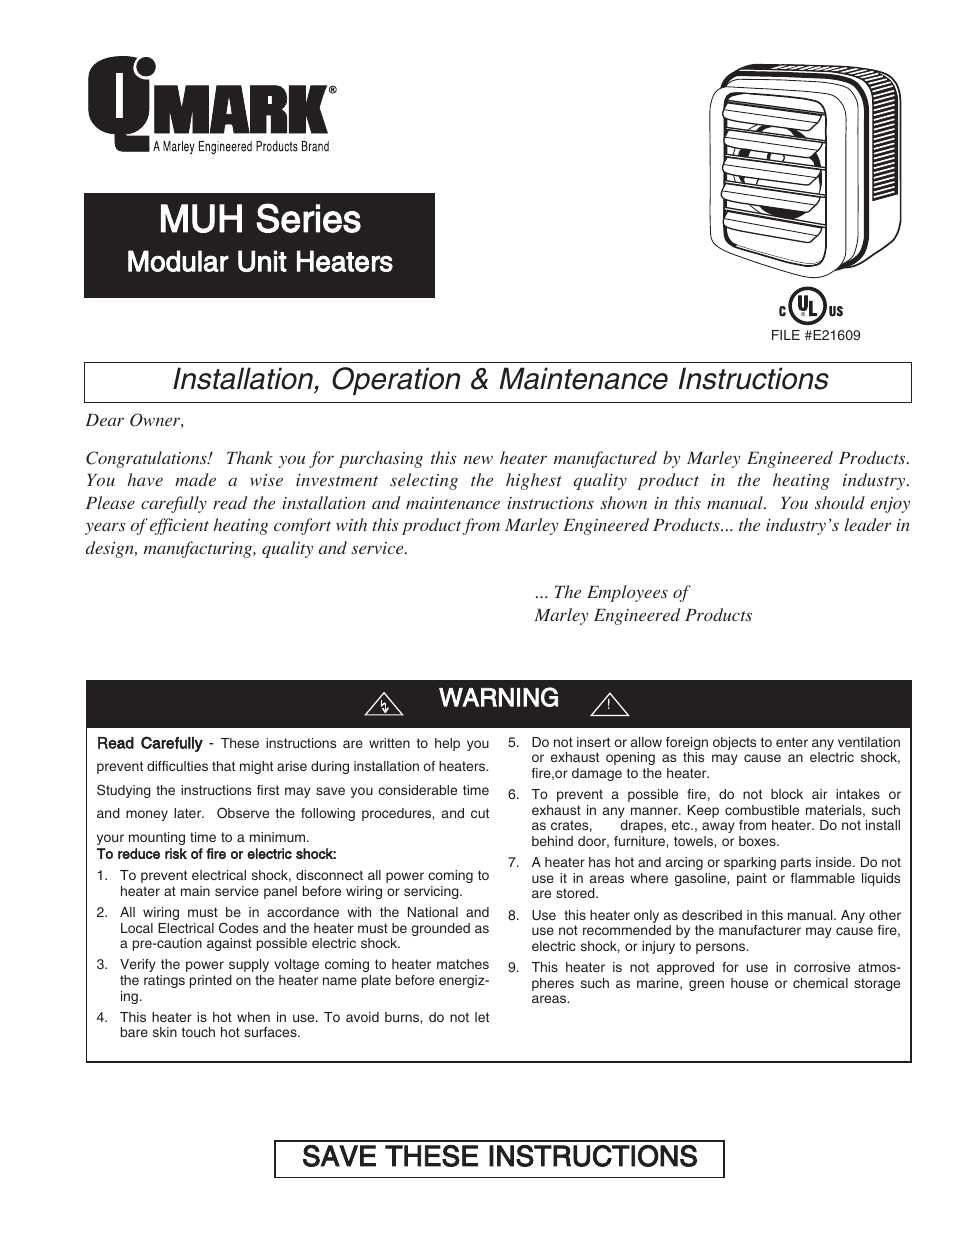 Qmark muh horizontal downflow unit heaters user manual 20 pages sciox Image collections